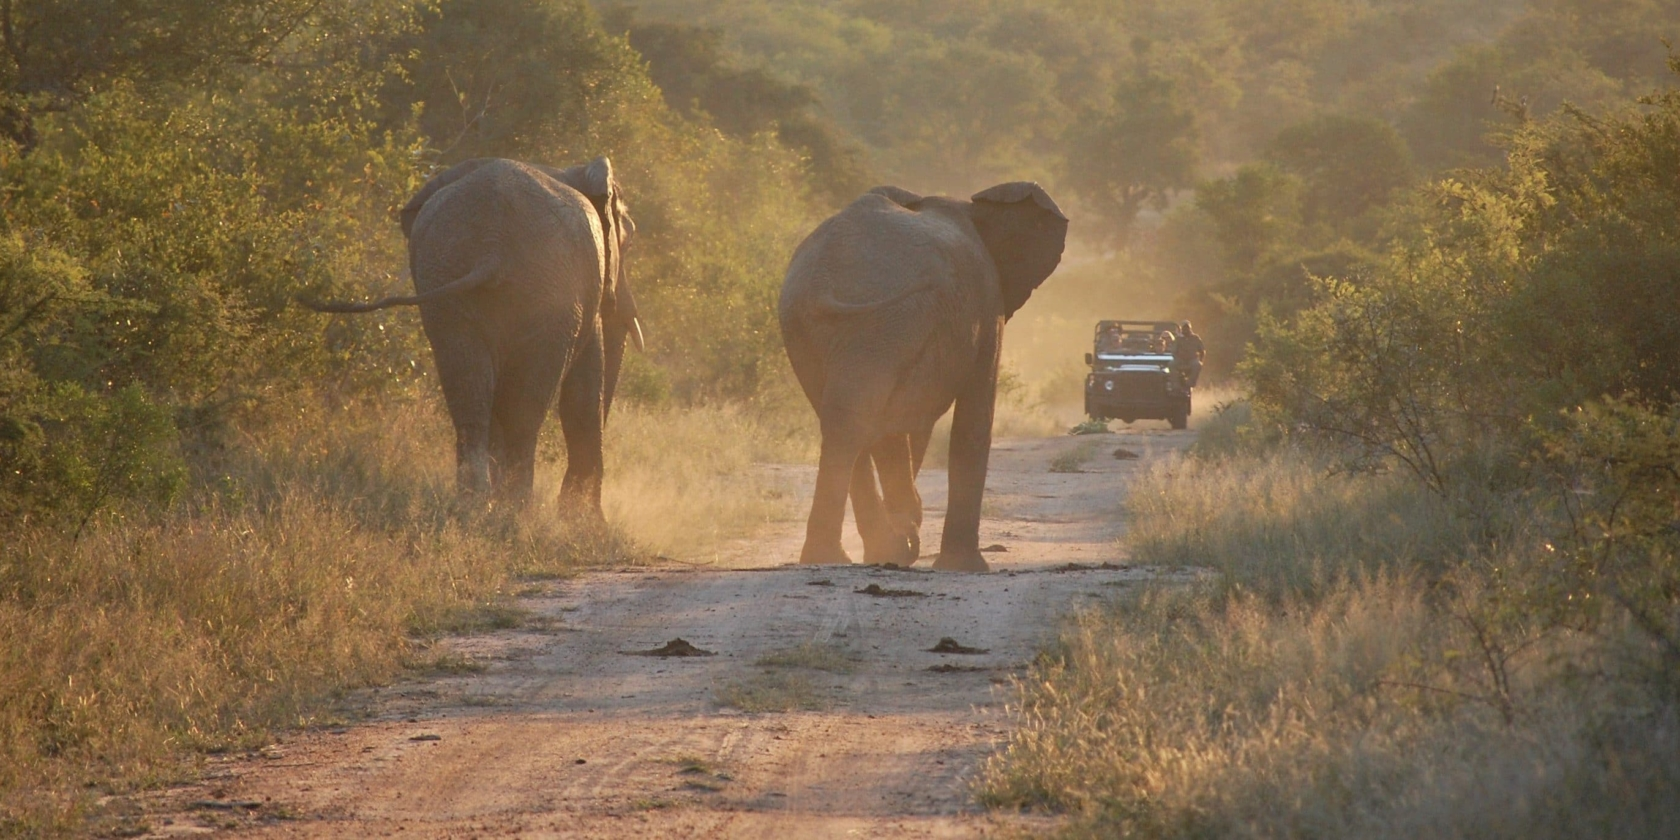 Out in Africa - Olifanten lopen richting game drive voertuig